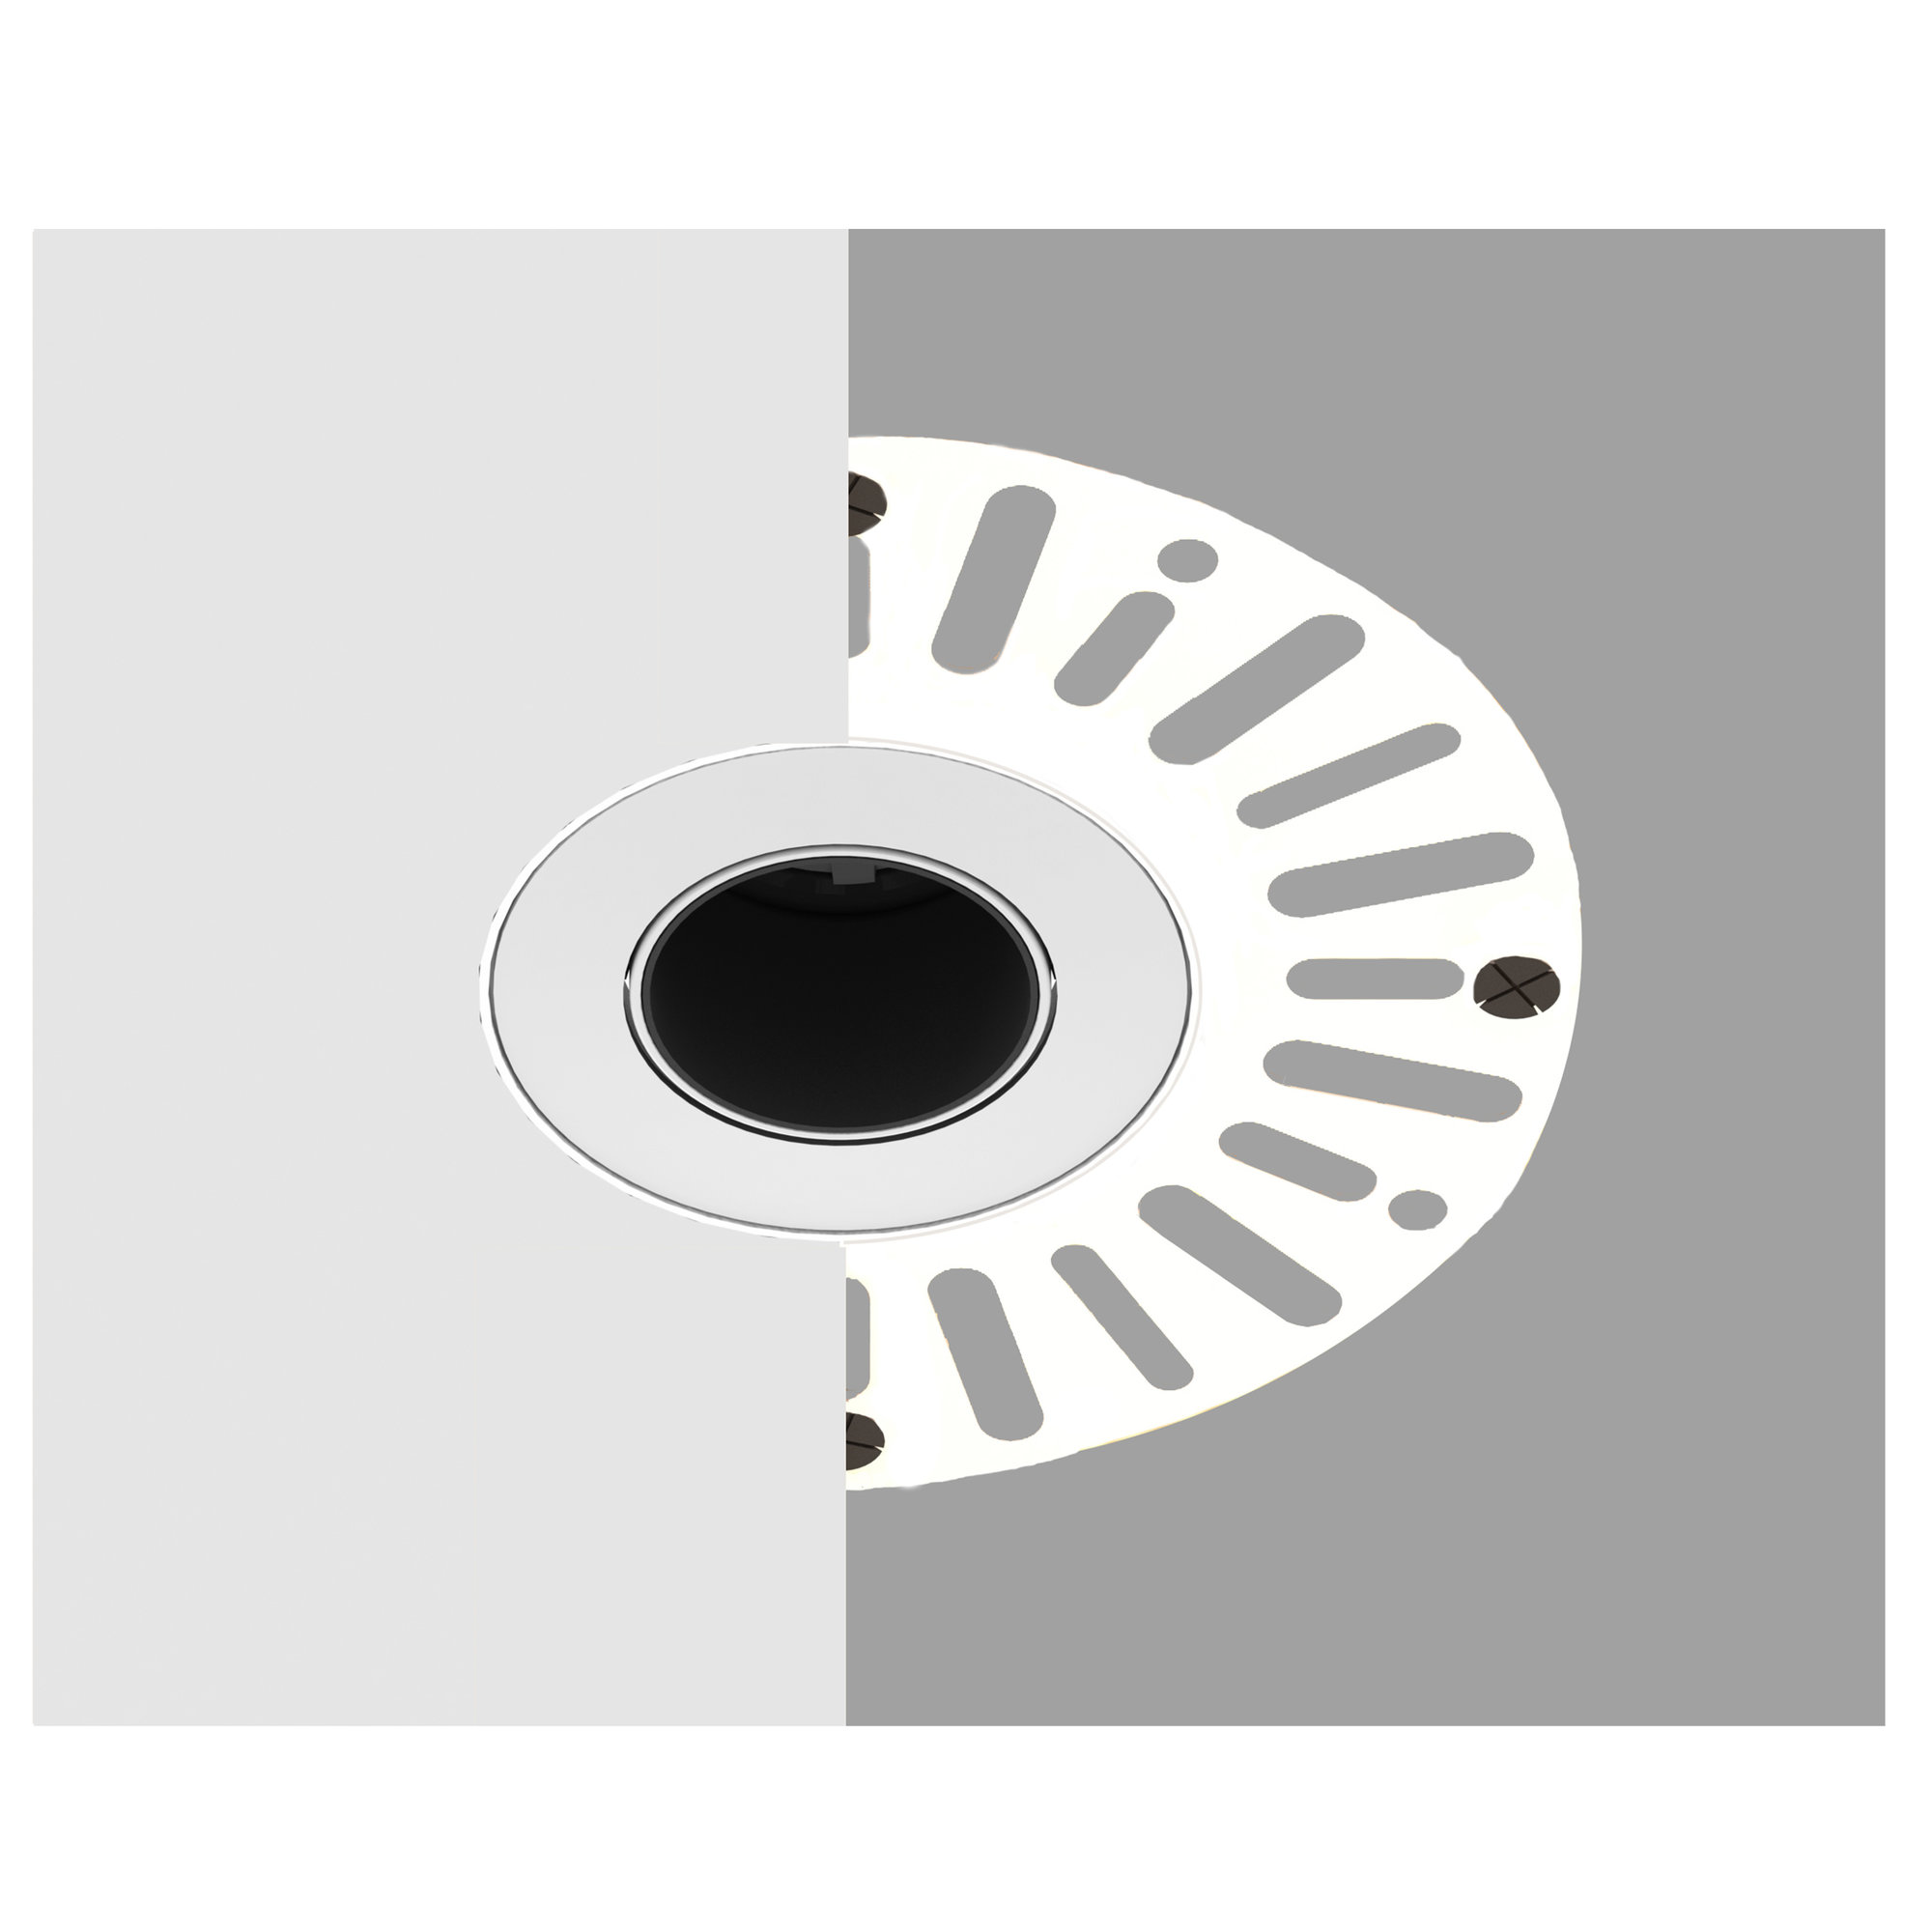 Plaster-in Flush Downlight Accessory